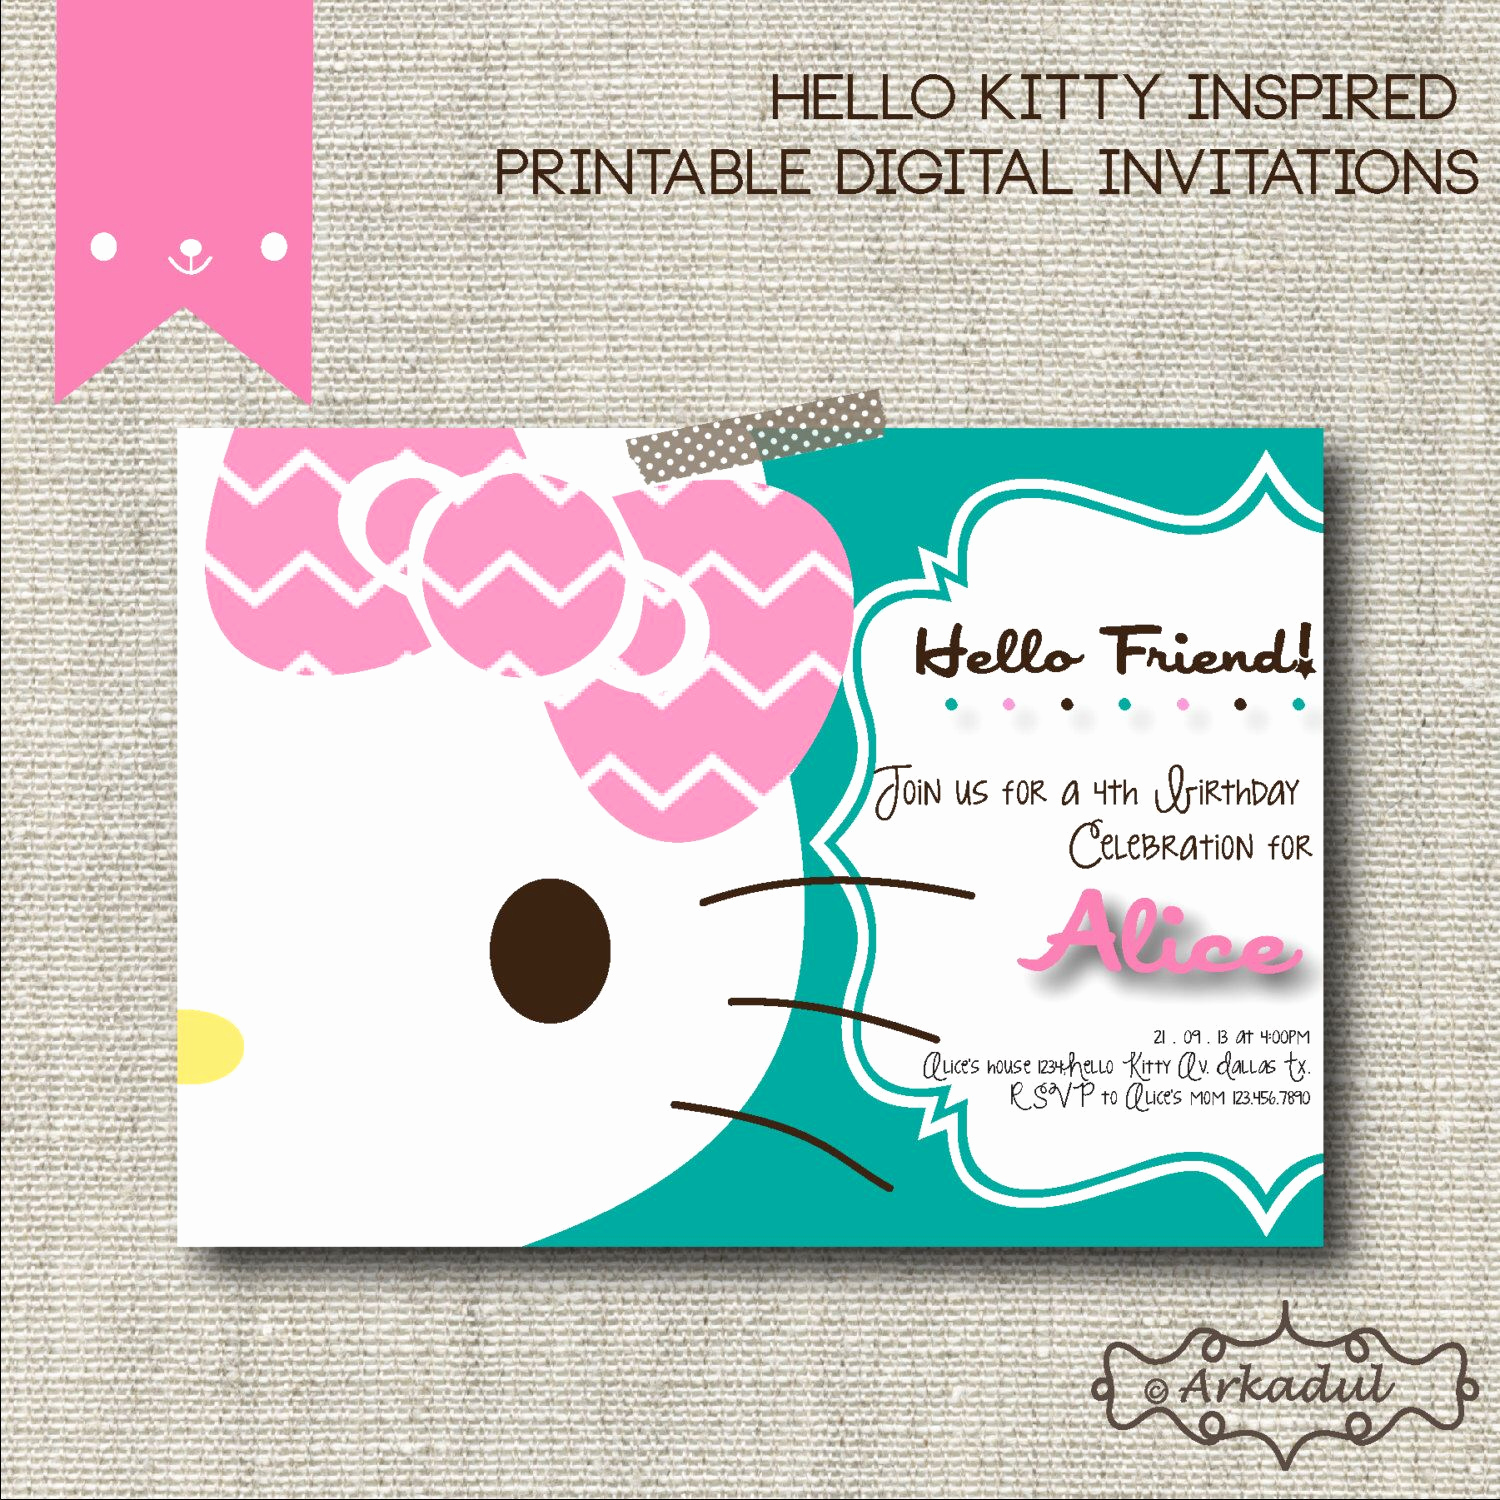 Hello Kitty Printable Invitation Elegant Hello Kitty Inspired Birthday Invitation Diy Printable